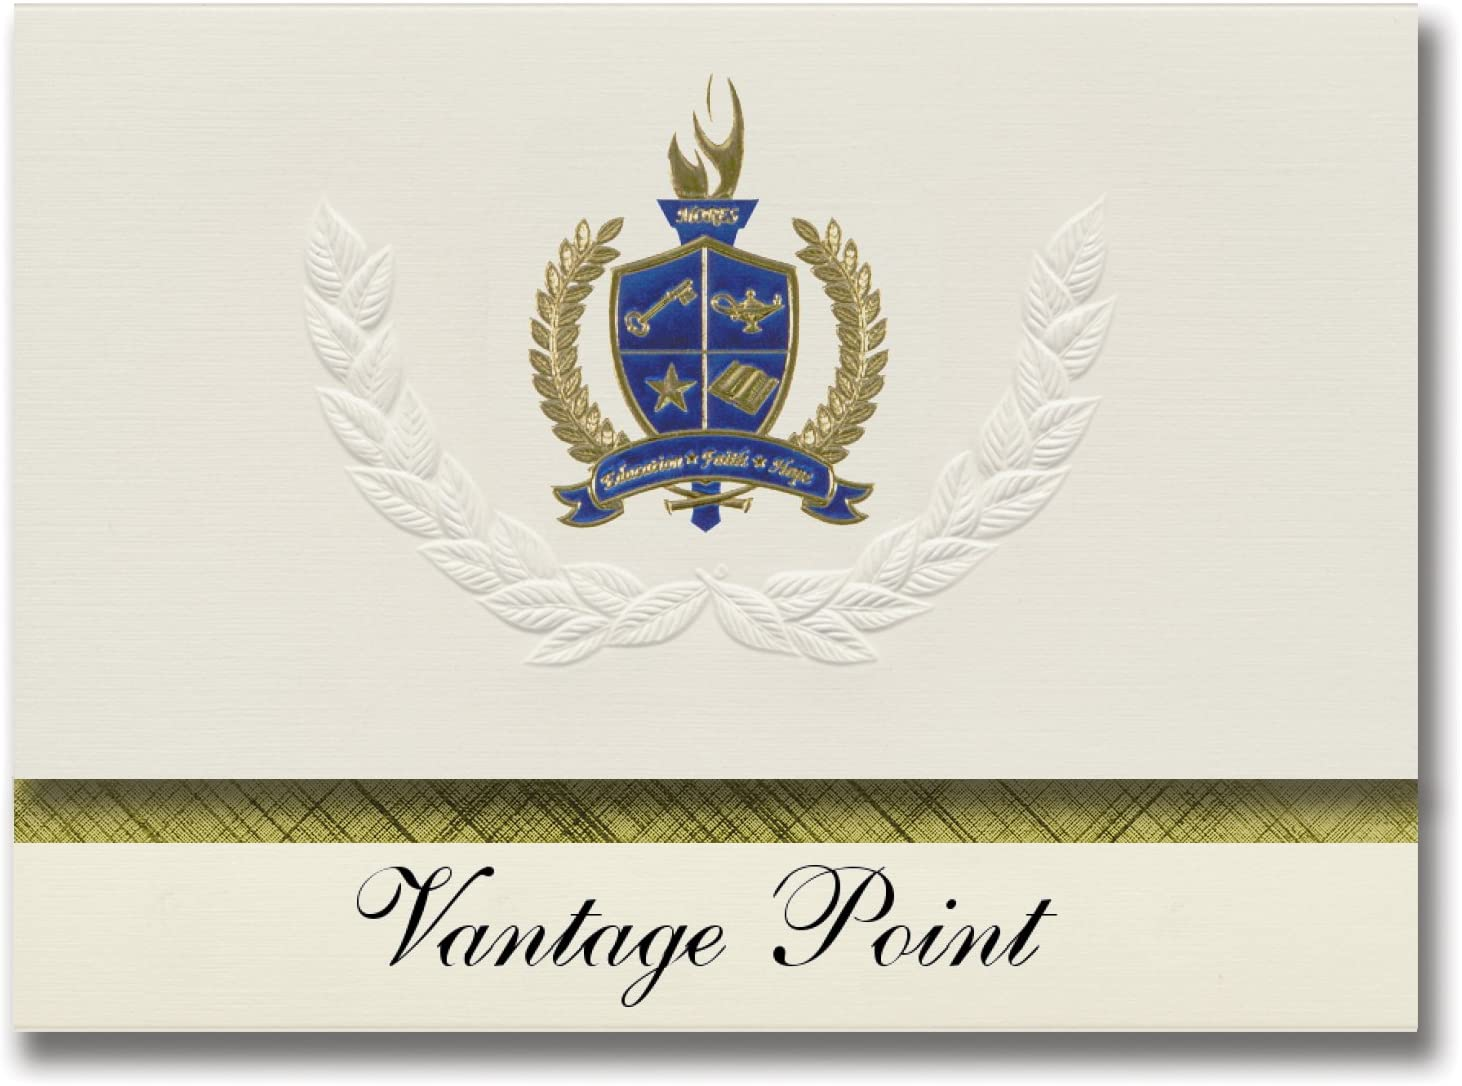 Signature Announcements Vantage Point (Northglenn, CO) Graduation Announcements, Presidential style, Elite package of 25 with Gold & Blue Metallic Foil seal